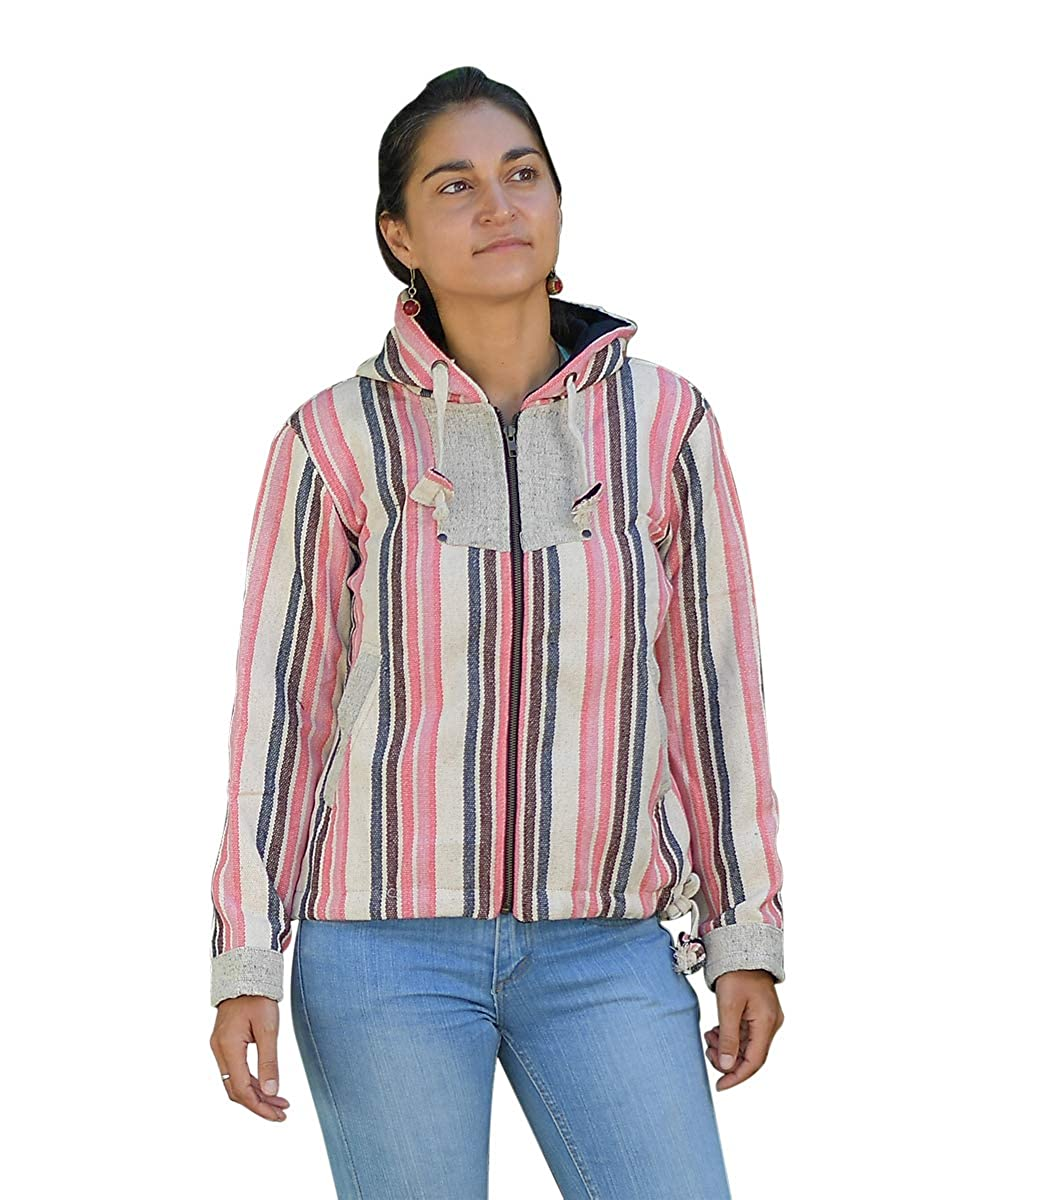 virblatt - Baja Hoodie Ladies Hippie Jacket Ethno Jacket Mexican Baja Hoodie - Tibet at Amazon Womens Clothing store: